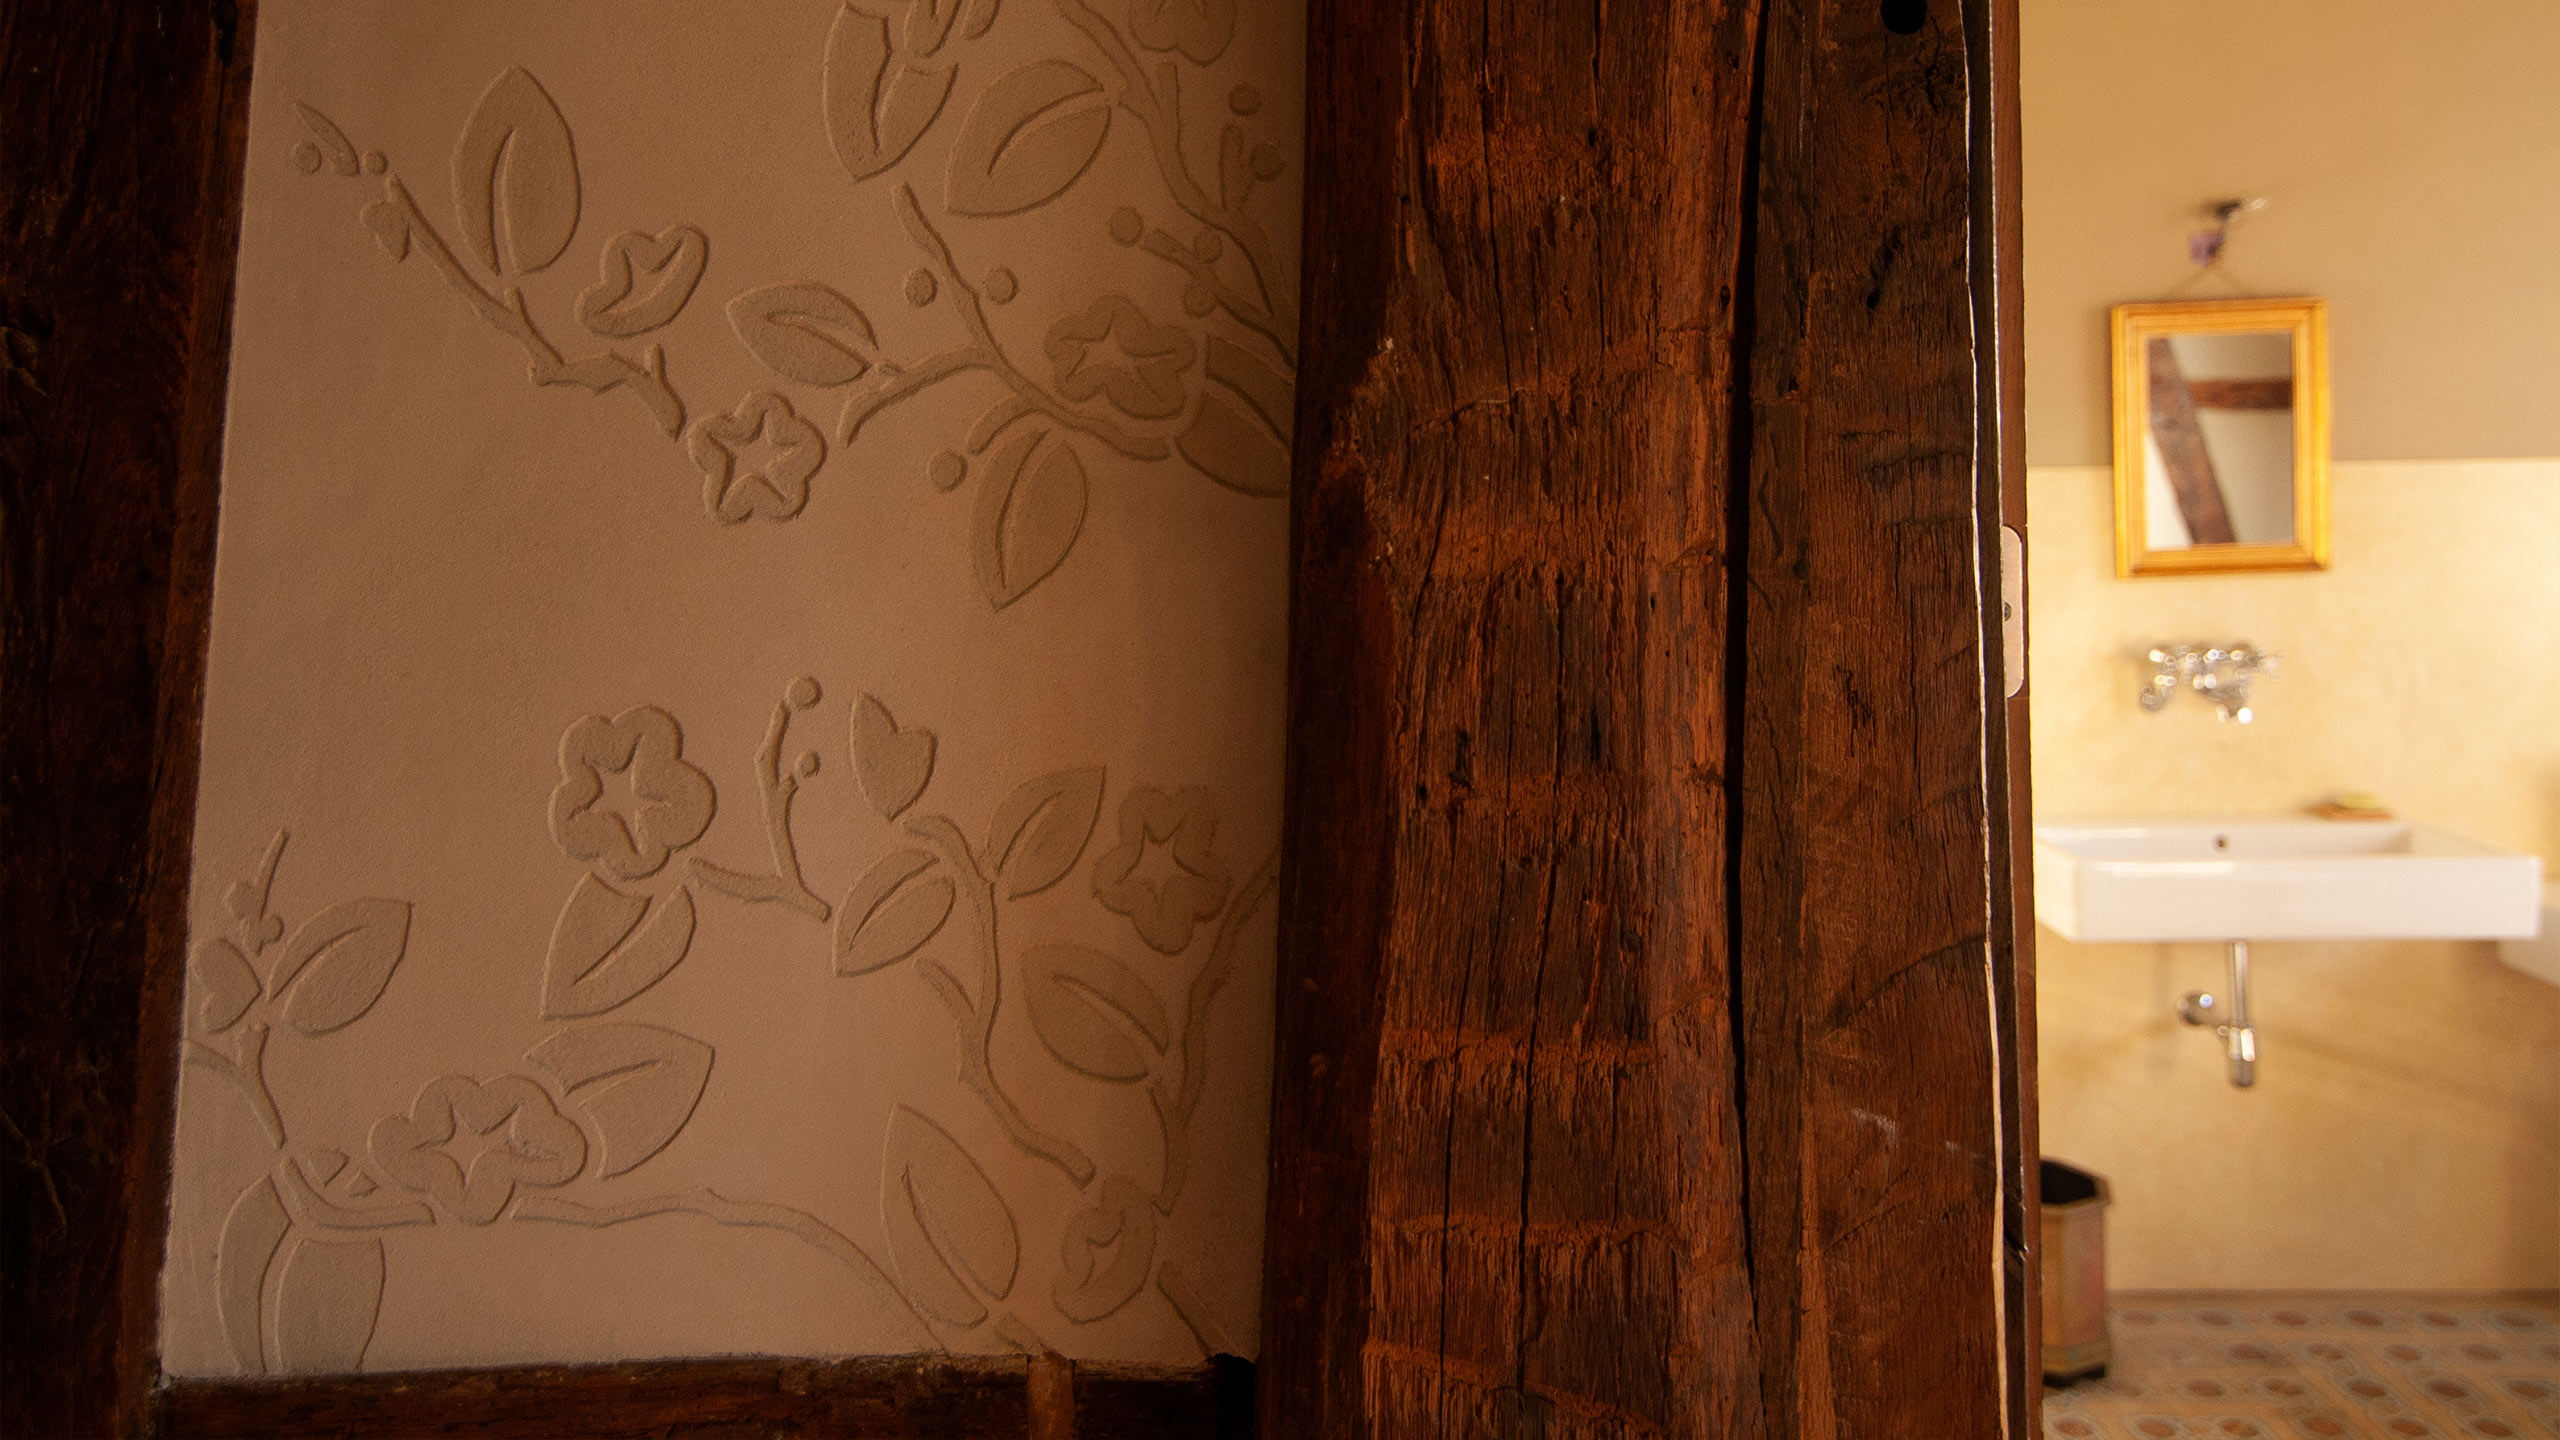 Residential - Timber Frame House, Sgraffito and bathroom